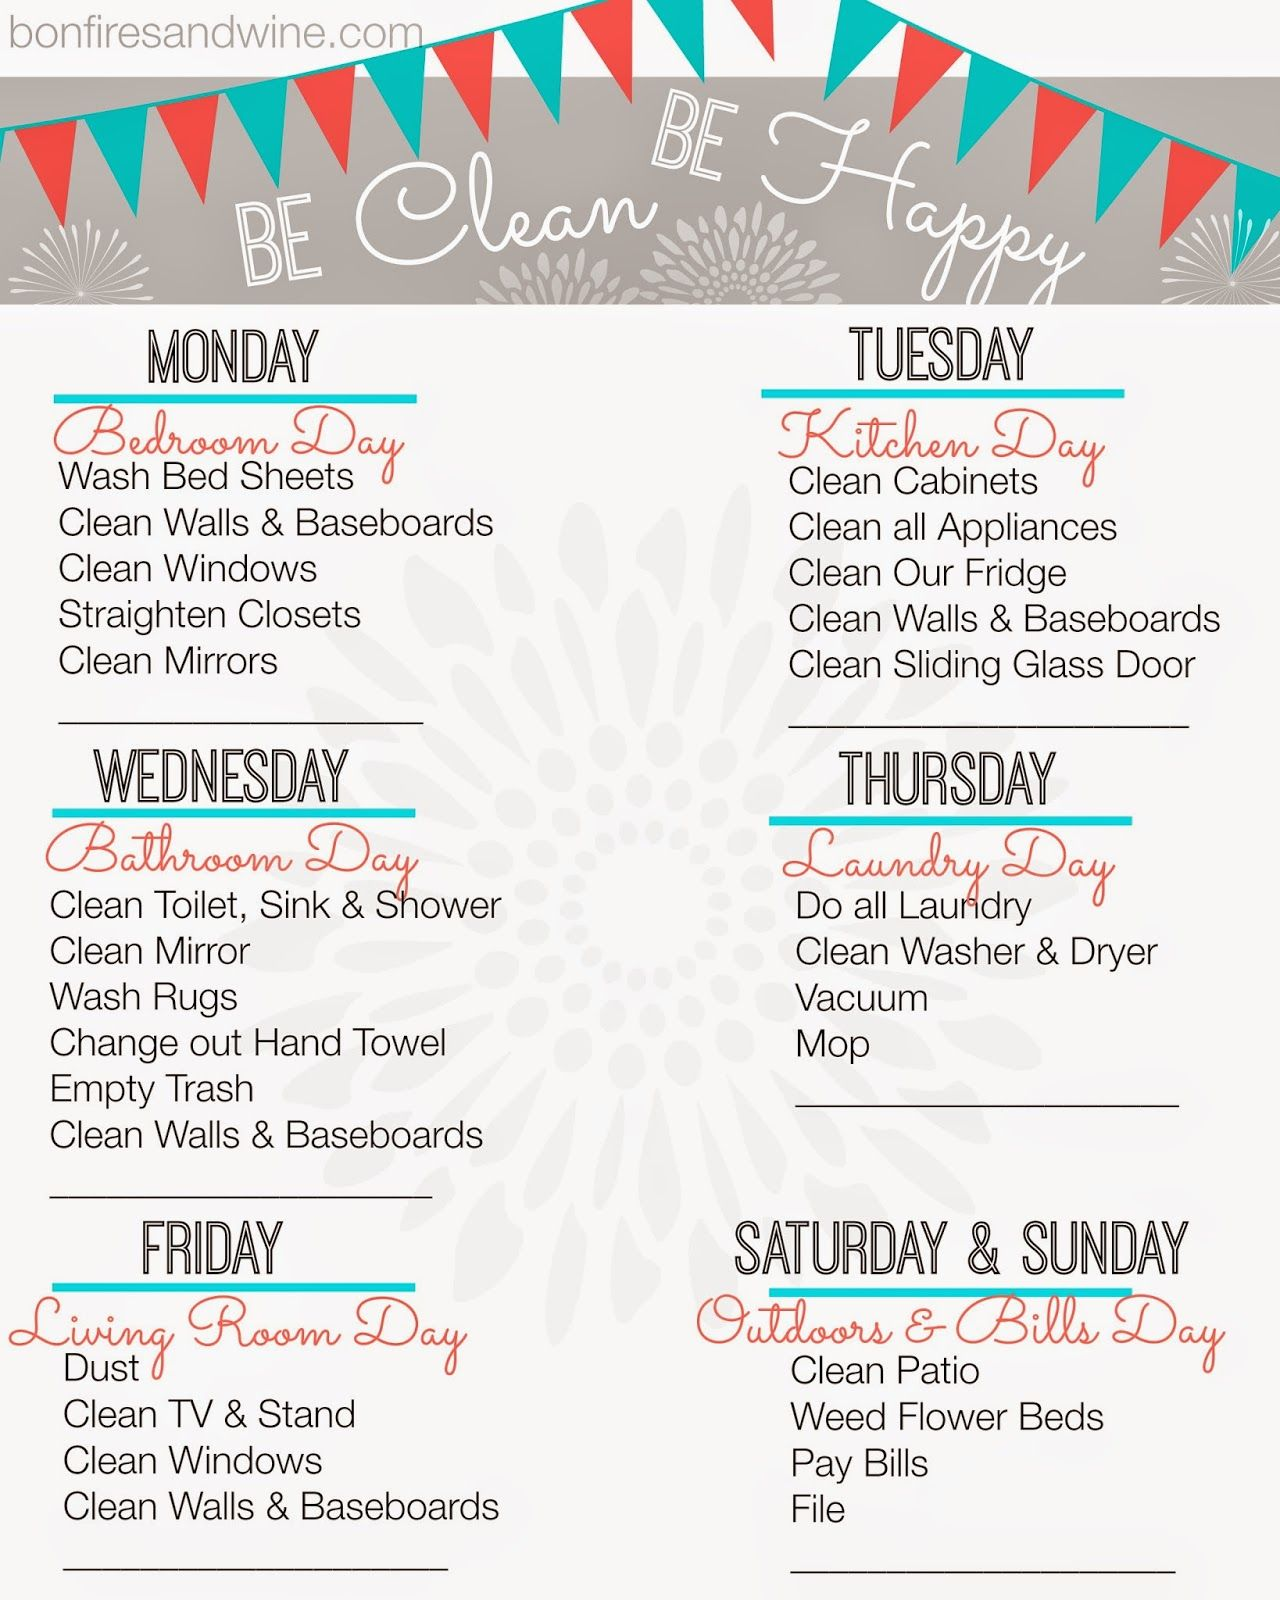 photo about Cleaning List Printable named Weekly Cleansing Program Absolutely free Printable Cleansing